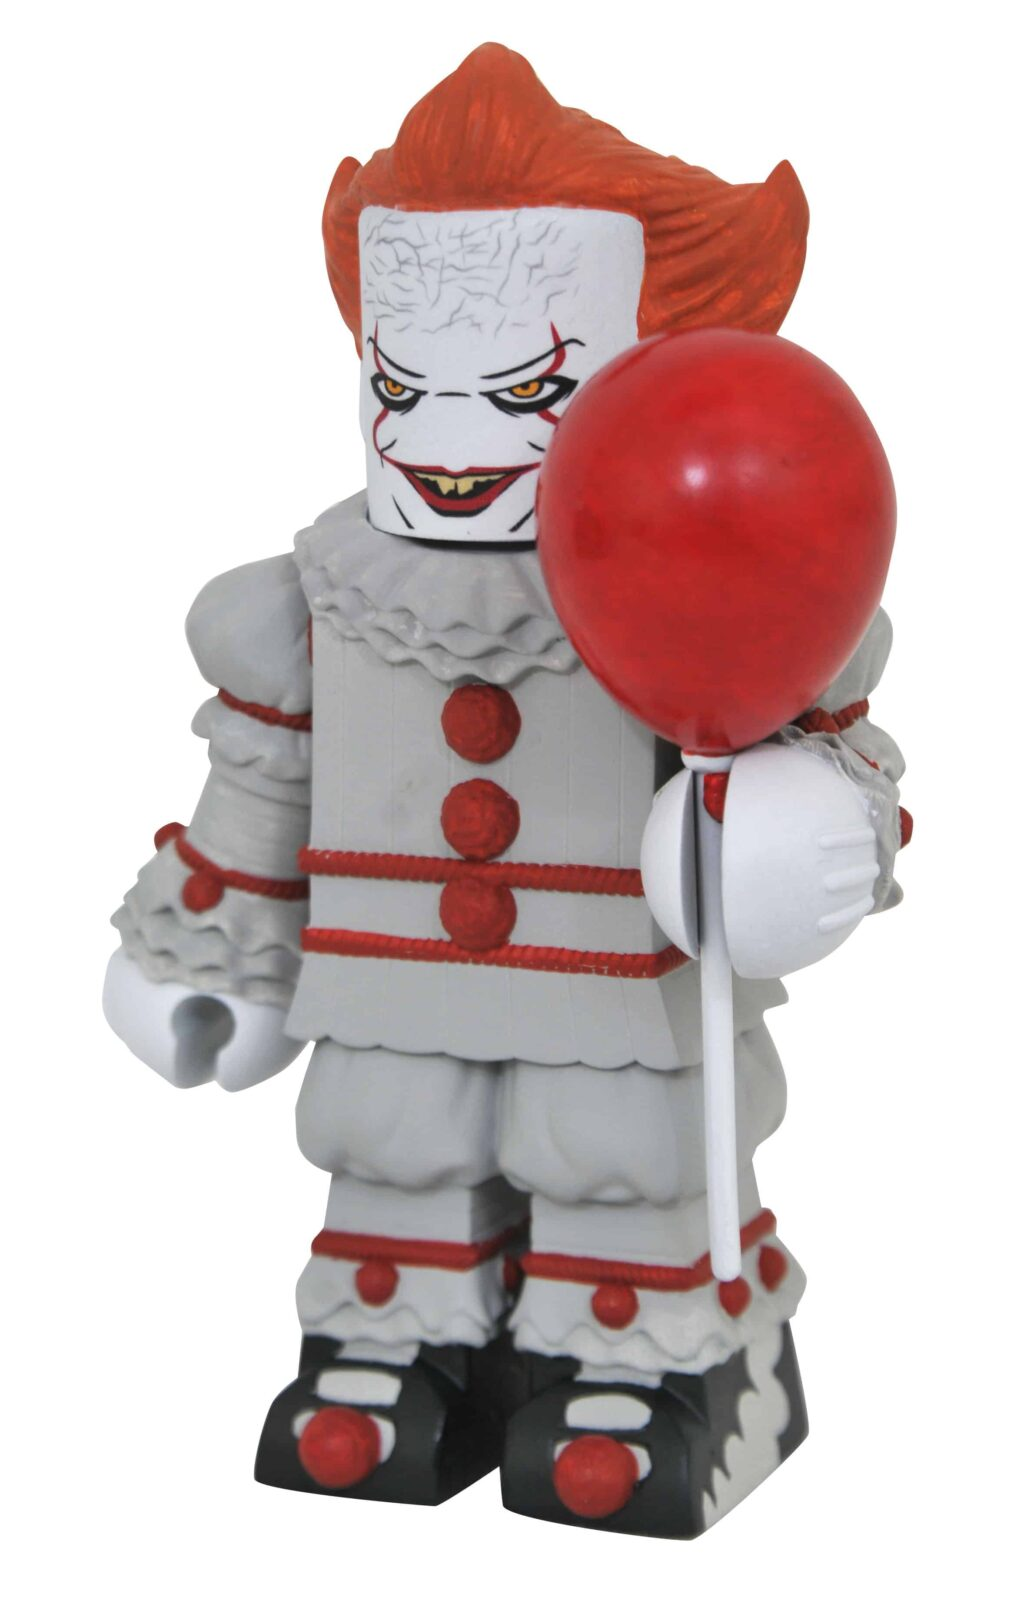 ITVinimate 2 1024x1624 - Diamond Select Toys' Pennywise Comes With His Own Red Balloon